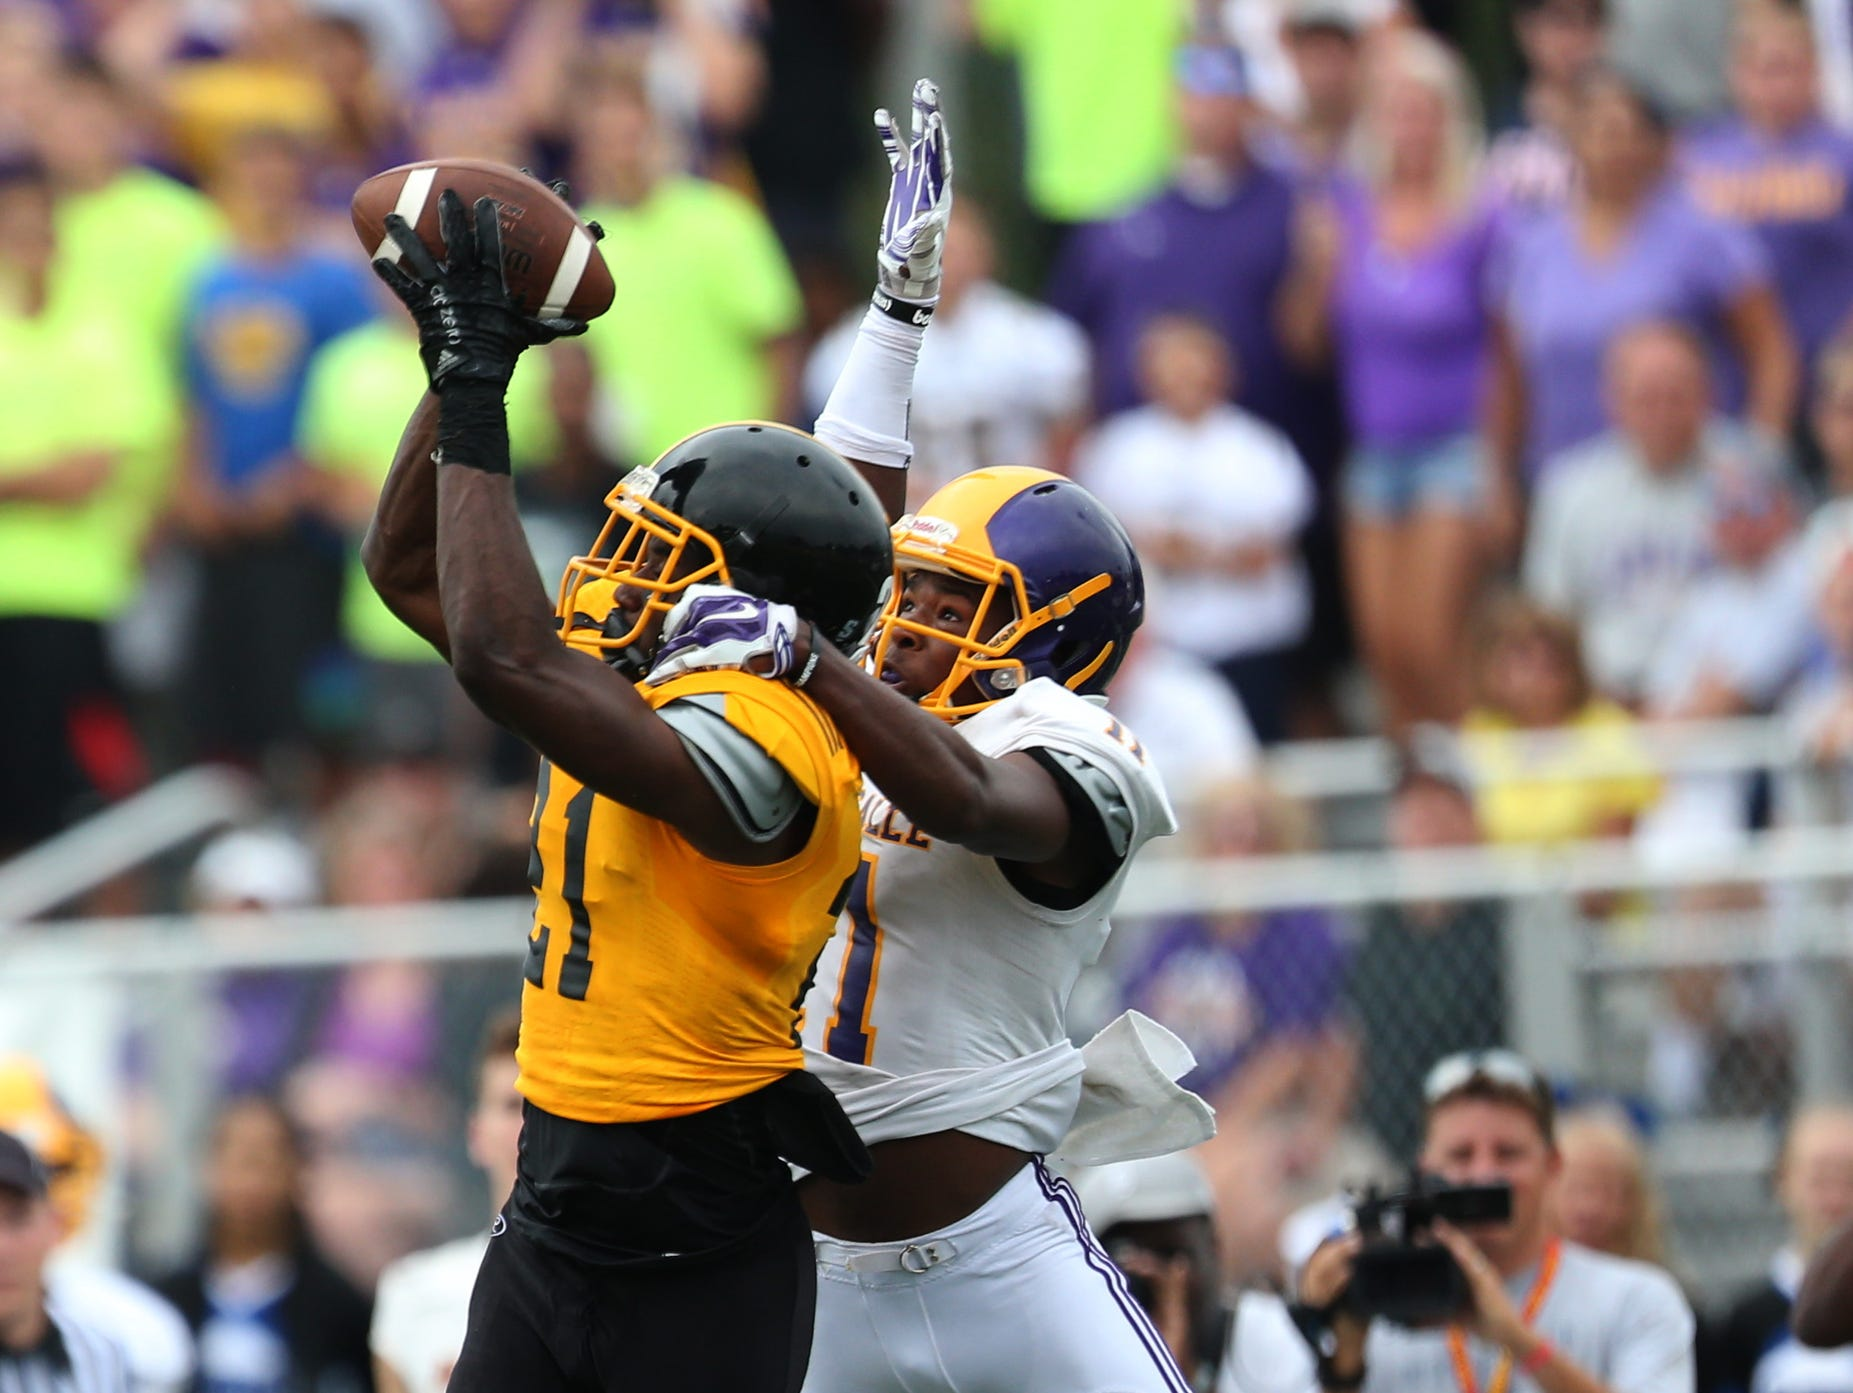 Detroit Martin Luther King's Lavert Hill makes the game-saving interception in front of Warren De La Salle's Myles Charlie during the Prep Kickoff Classic on Aug. 29, 2015 at Wayne State's Tom Adams Field in Detroit.